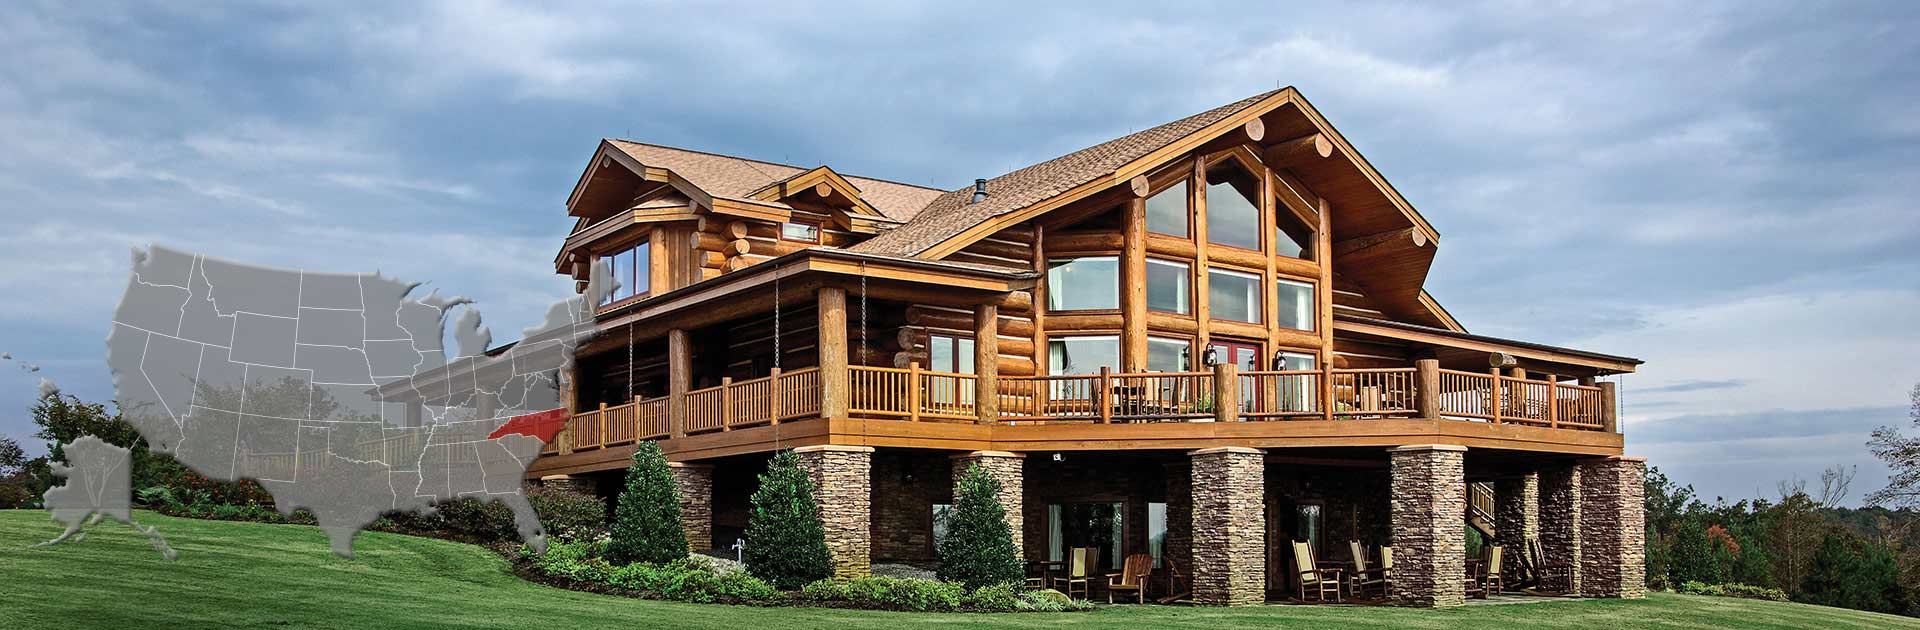 North carolina log and timber frame homes by precisioncraft for House plans nc